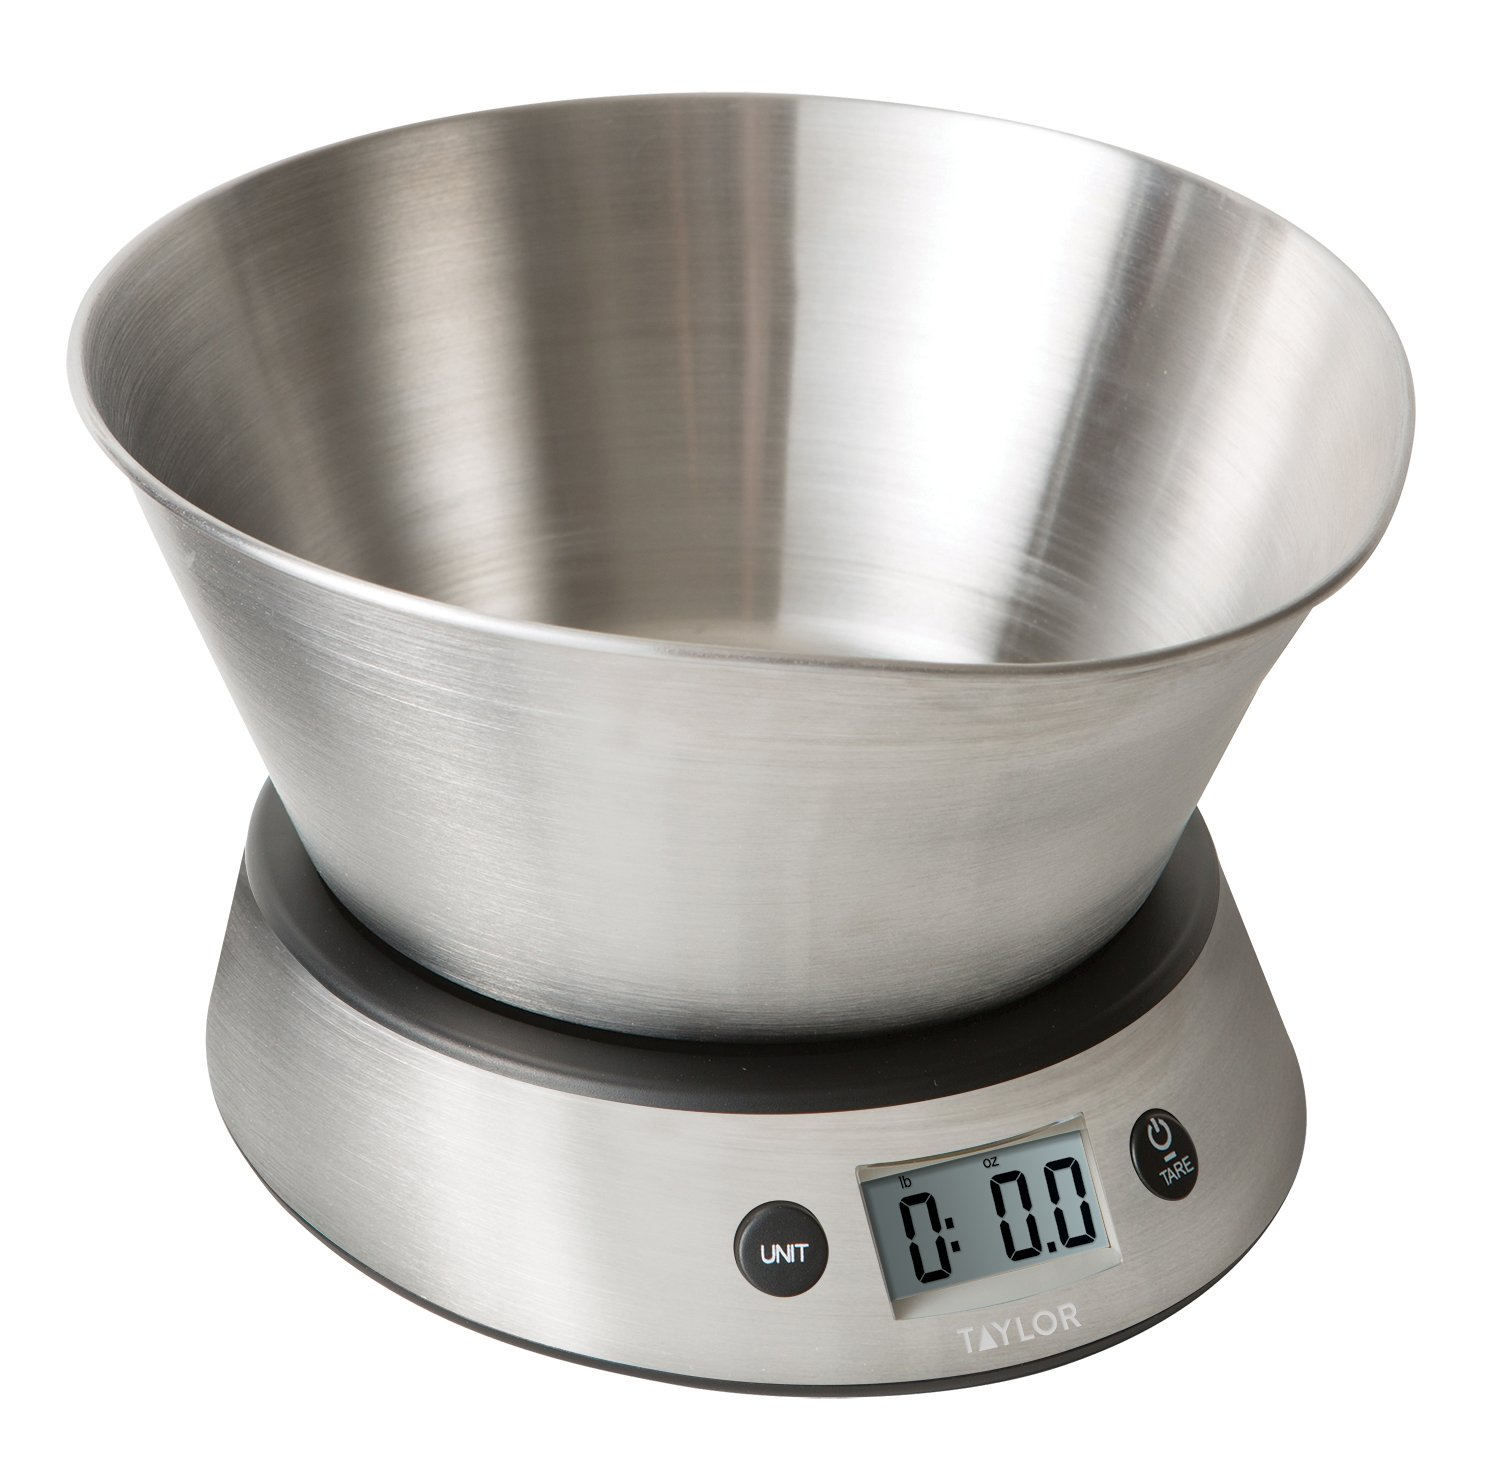 Amazon.com: Taylor Weighing Bowl Digital Kitchen Scale, 11 lb ...